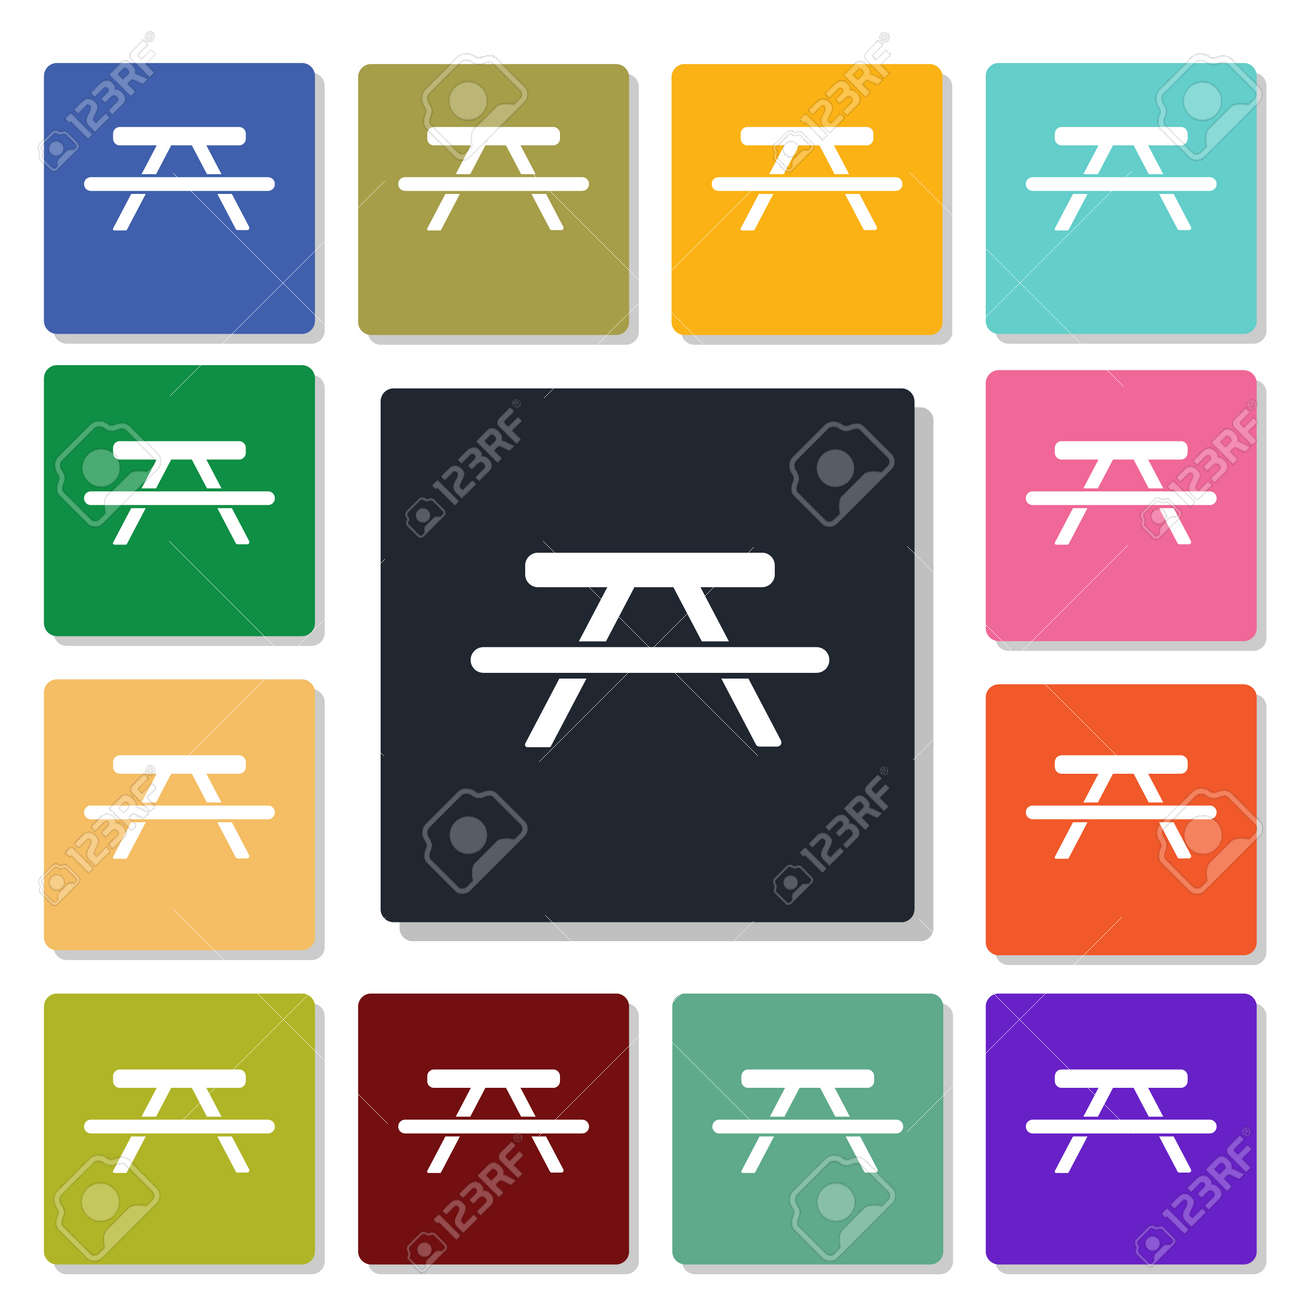 Picnic table icon royalty free cliparts vectors and stock picnic table icon stock vector 50381989 biocorpaavc